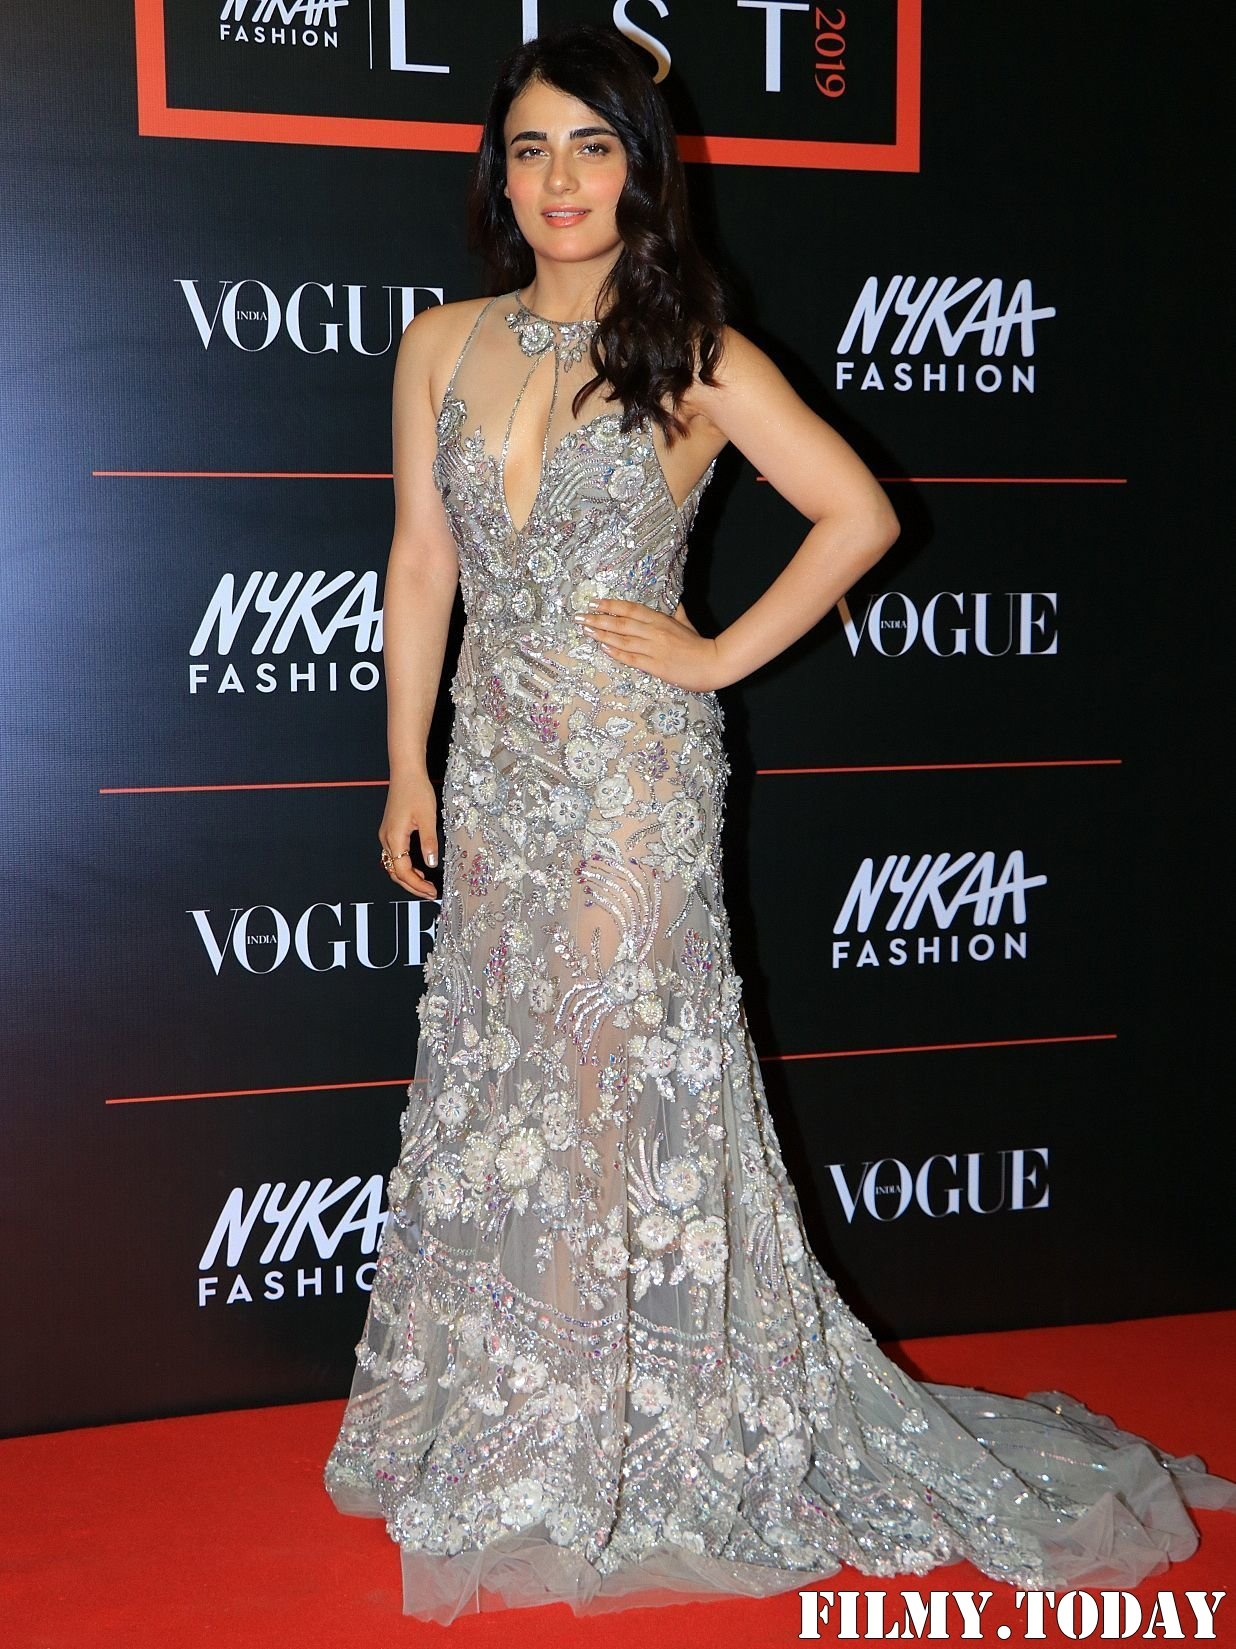 Radhika Madan - Photos: Celebs At Vogue The Power List 2019 At St Regis Hotel | Picture 1706351